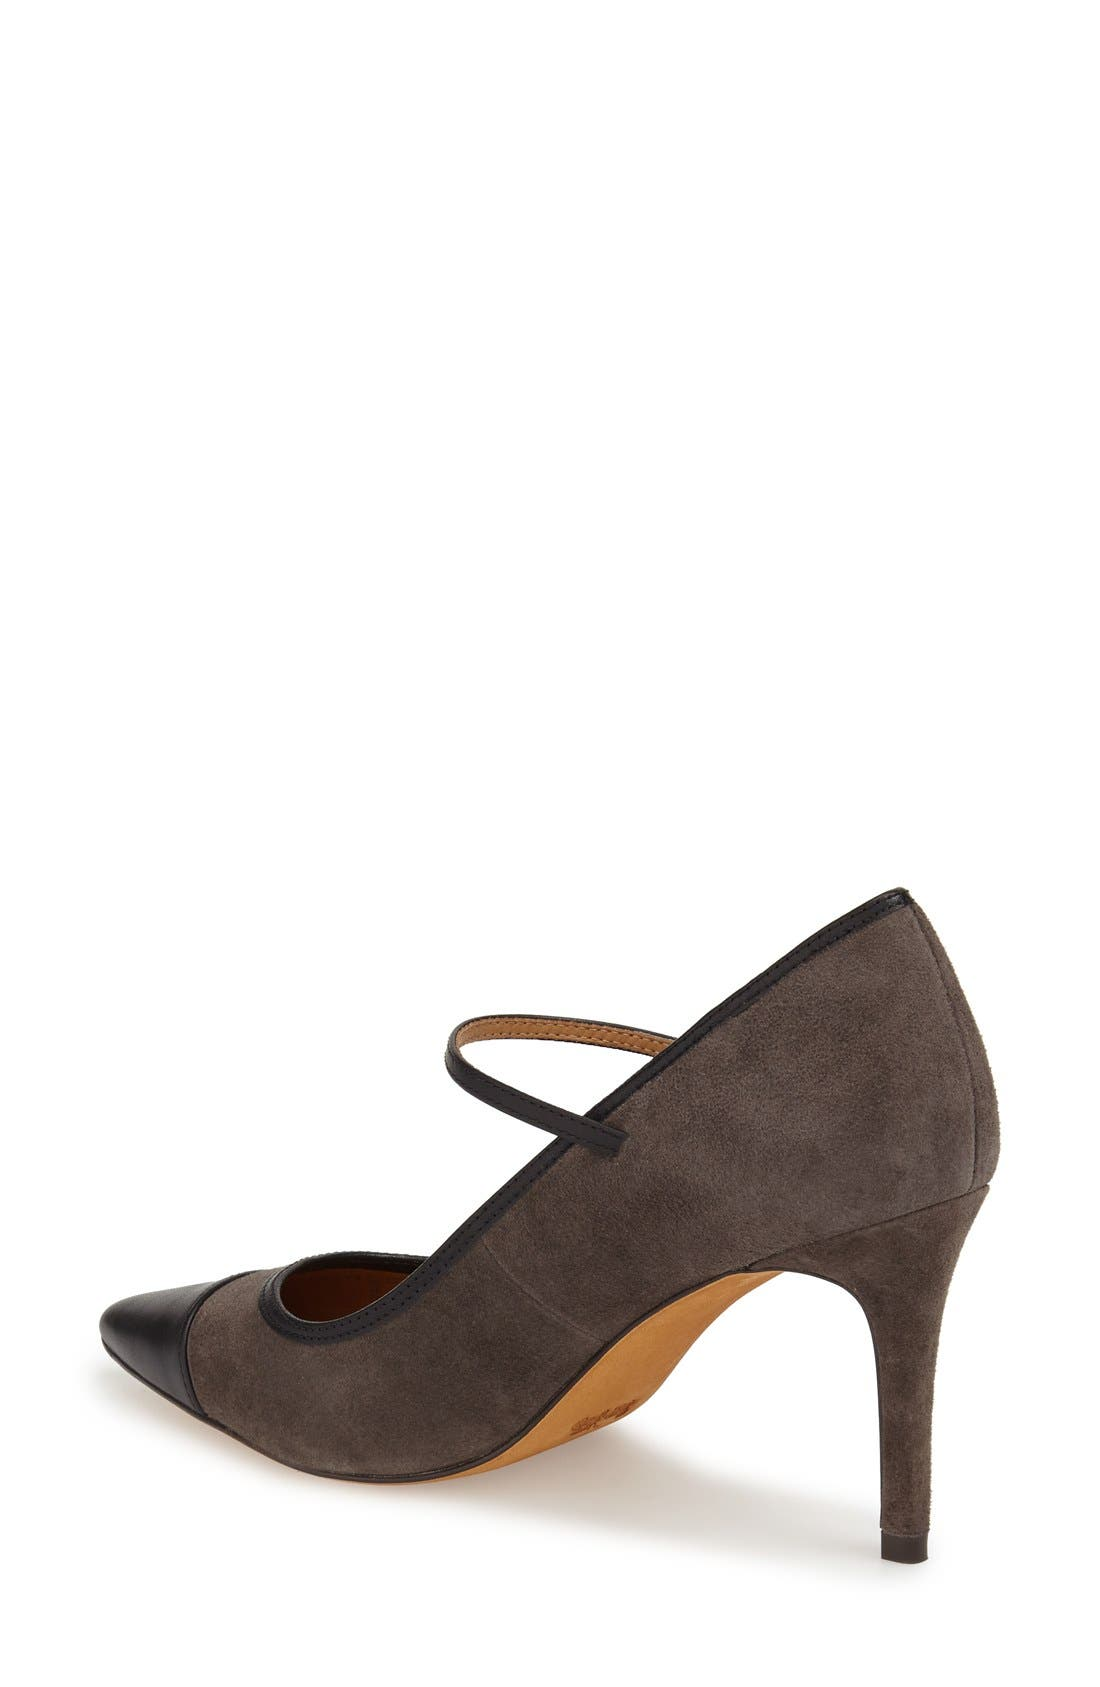 'Smith' Mary Jane Pump,                             Alternate thumbnail 2, color,                             Mink/ Black Suede